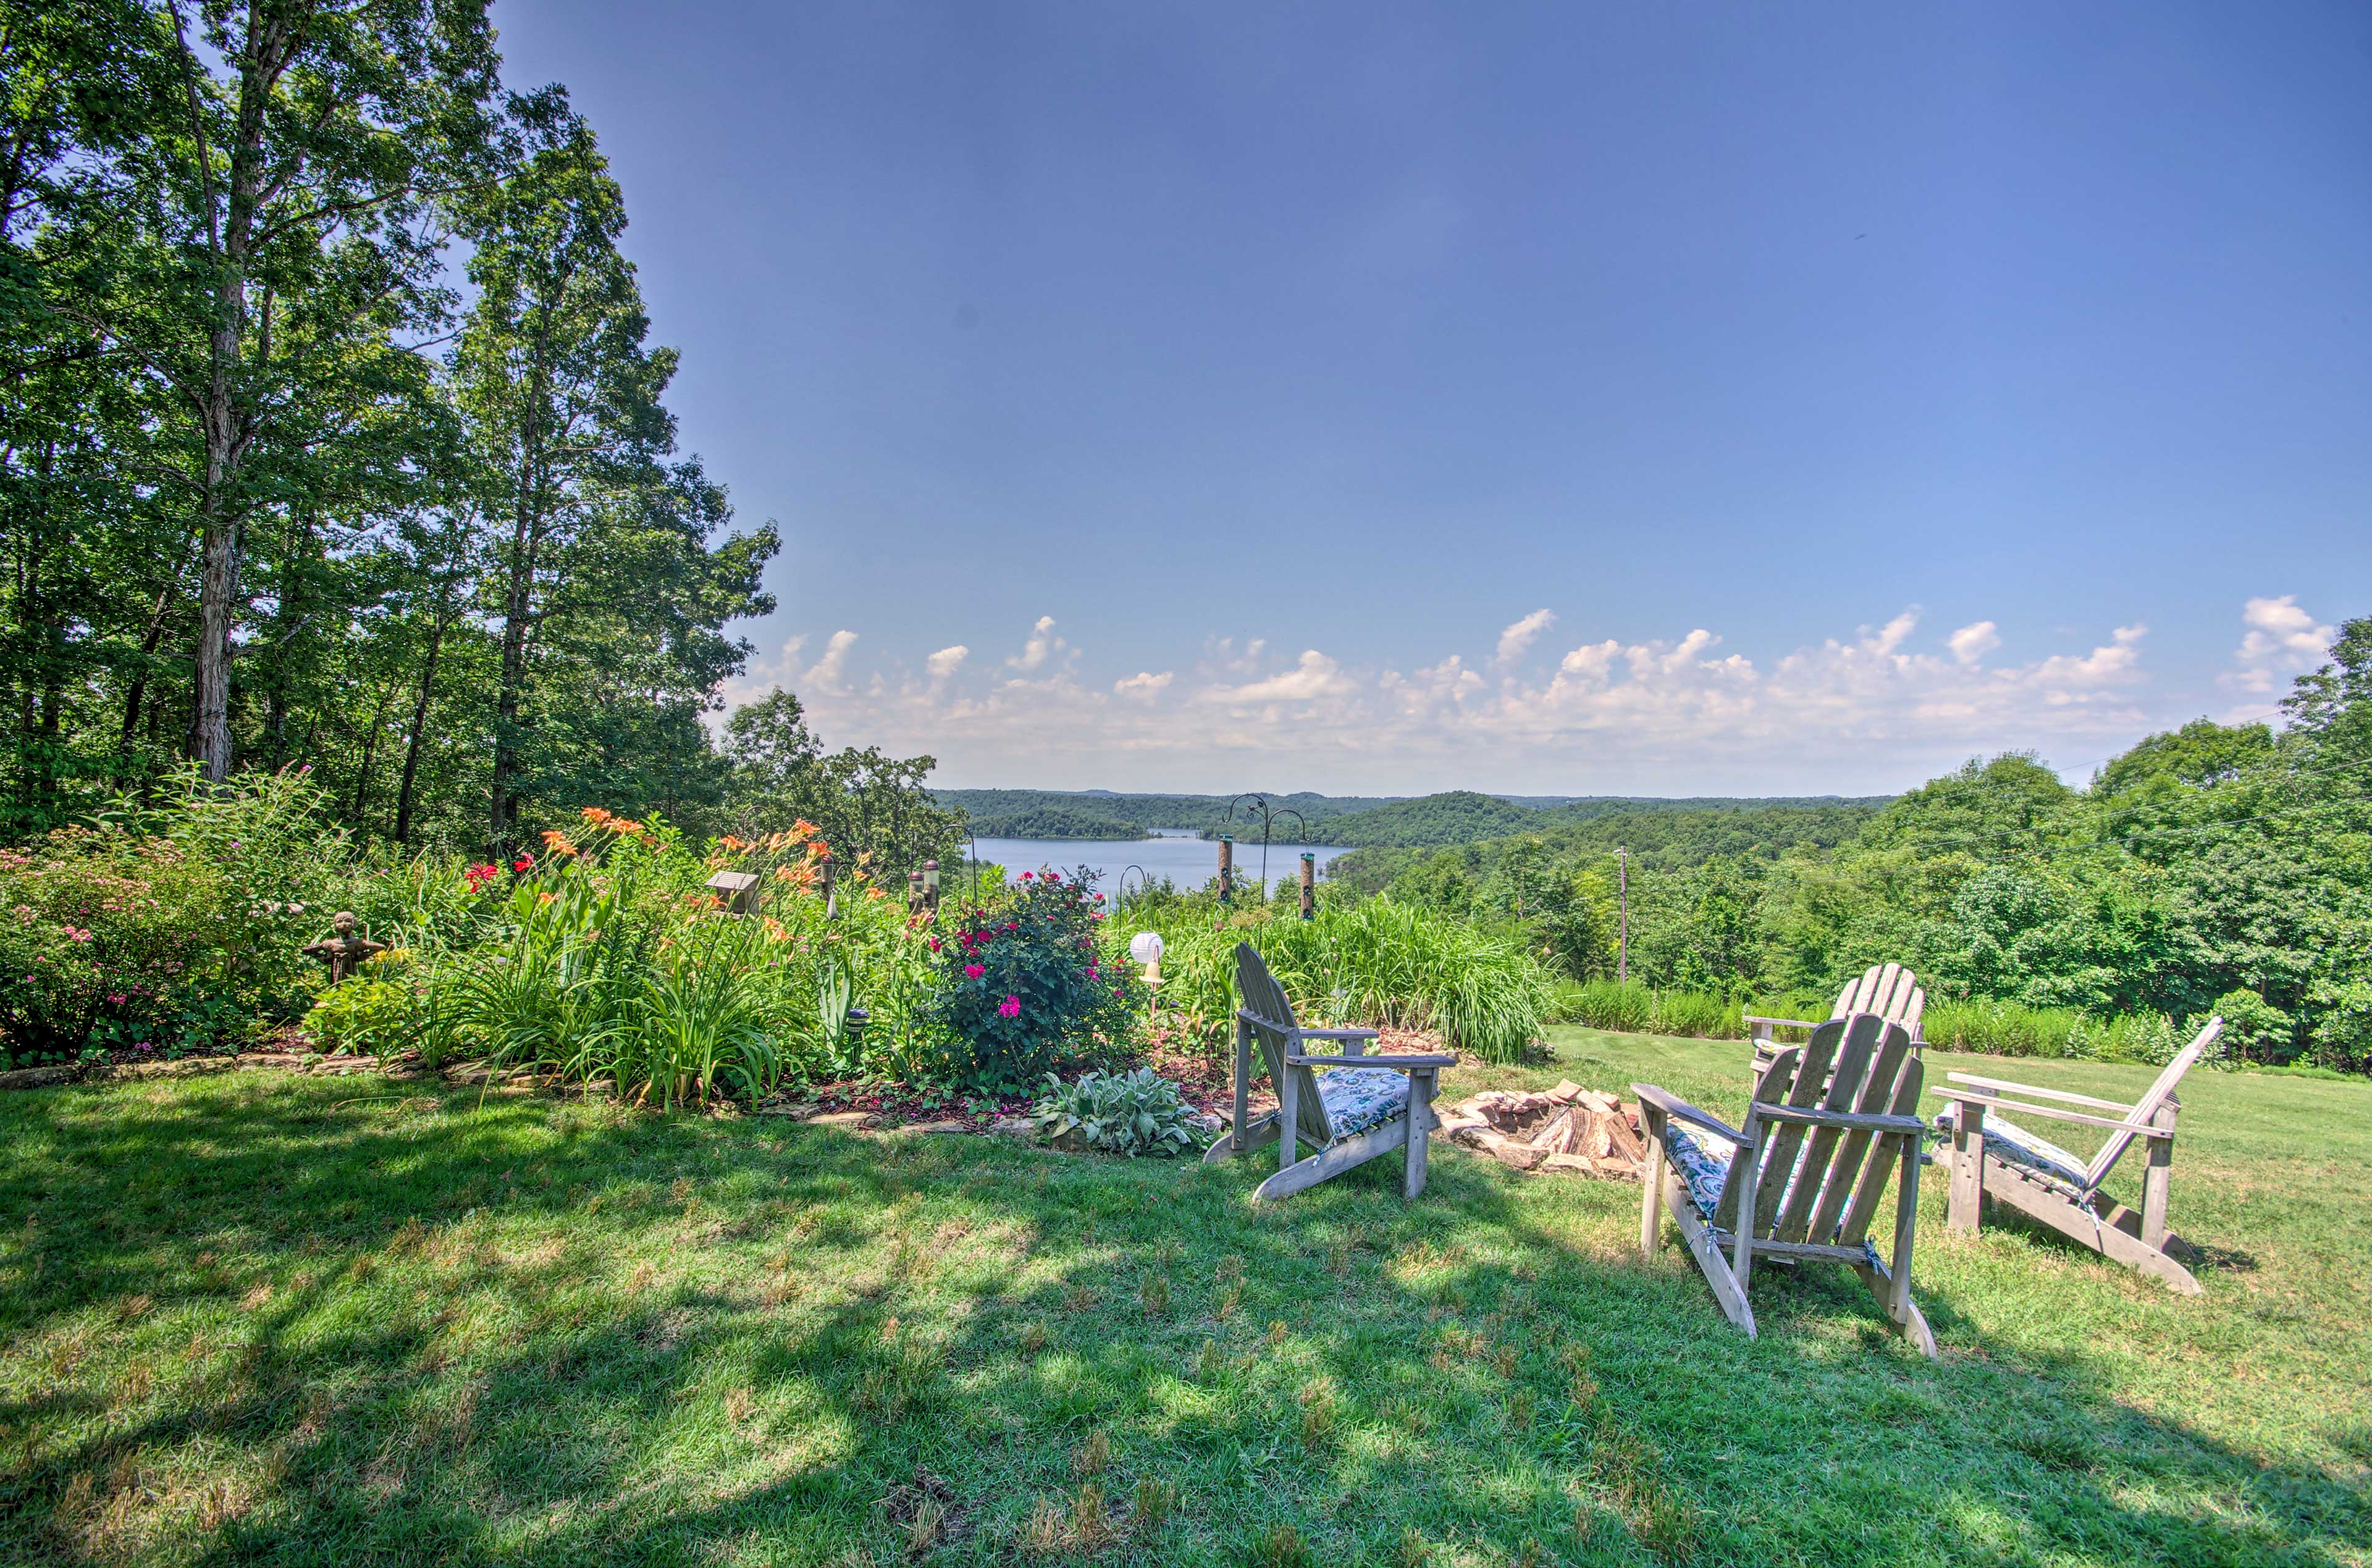 Fall in love with this Norfork Lake vacation rental apartment!